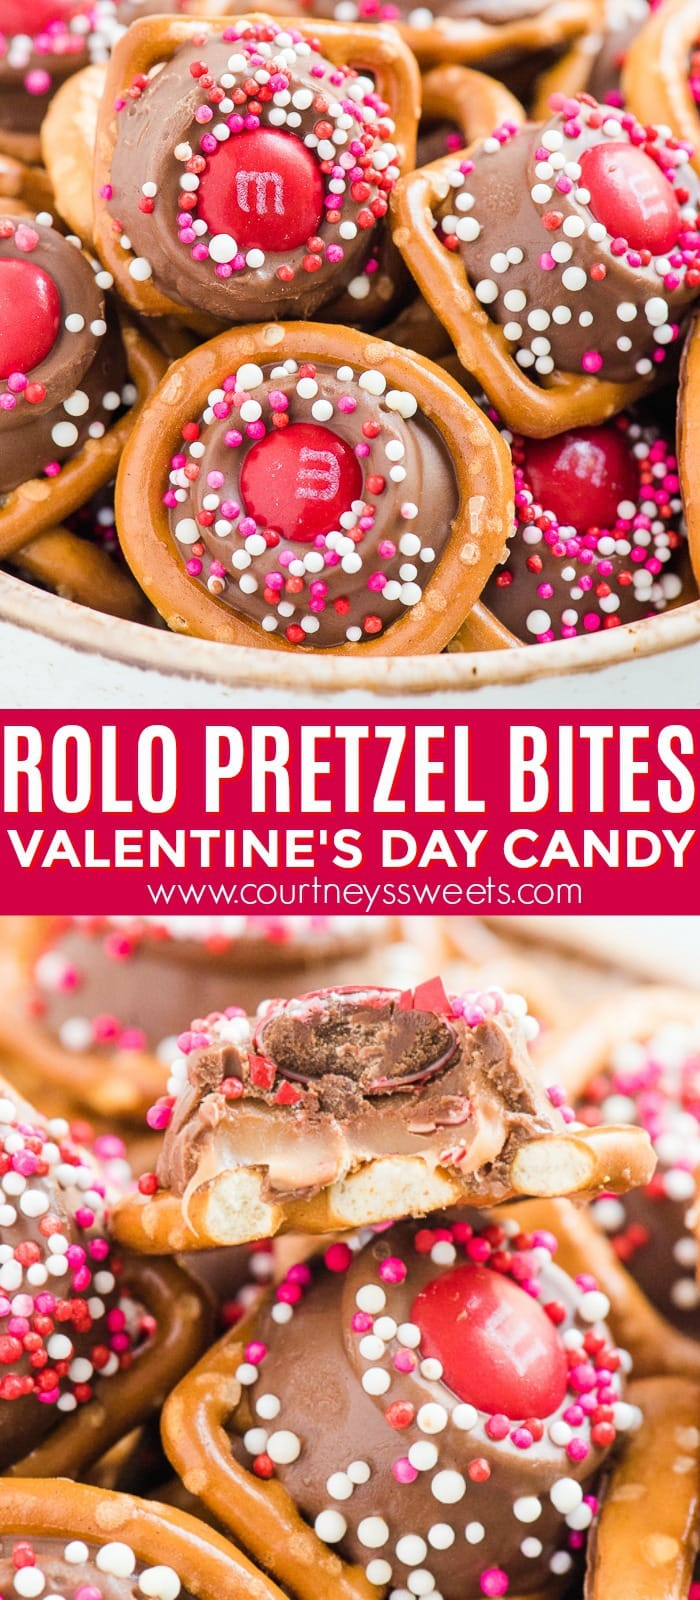 rolo pretzels bites recipe valentine's day candy edible gift